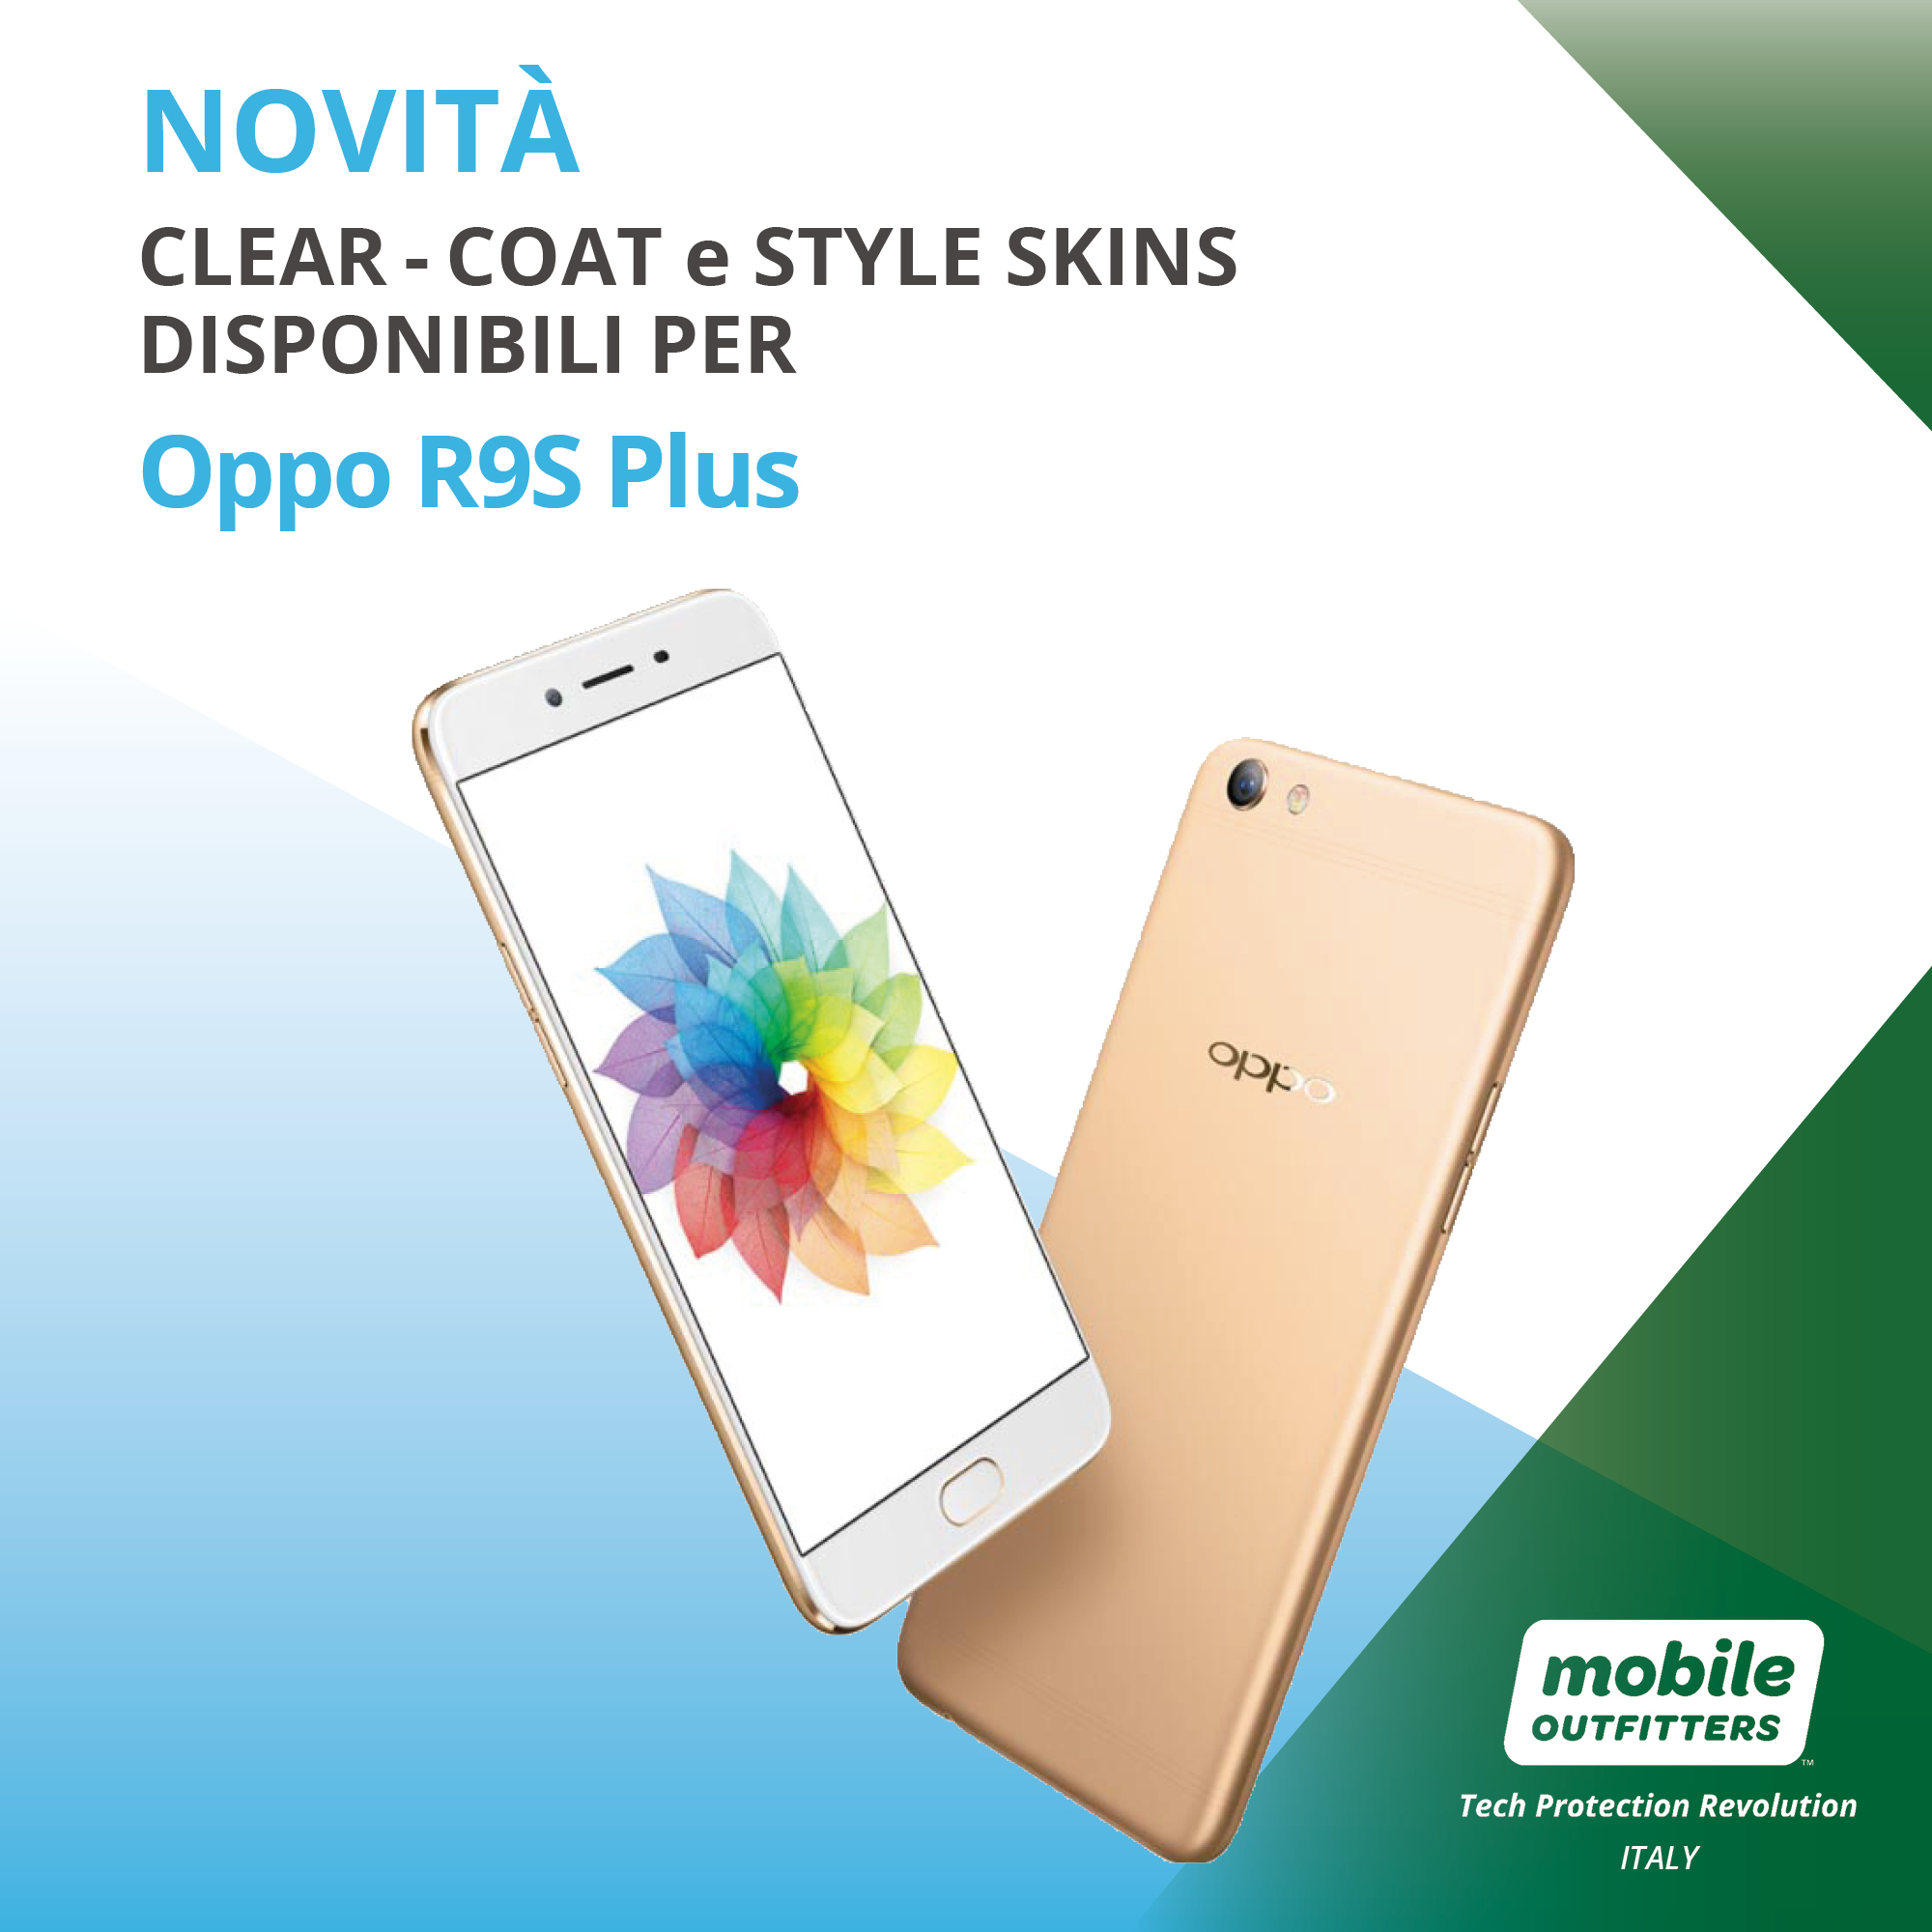 07_06_MOBILE OUTFITTERS_OPPO R9S PLUS